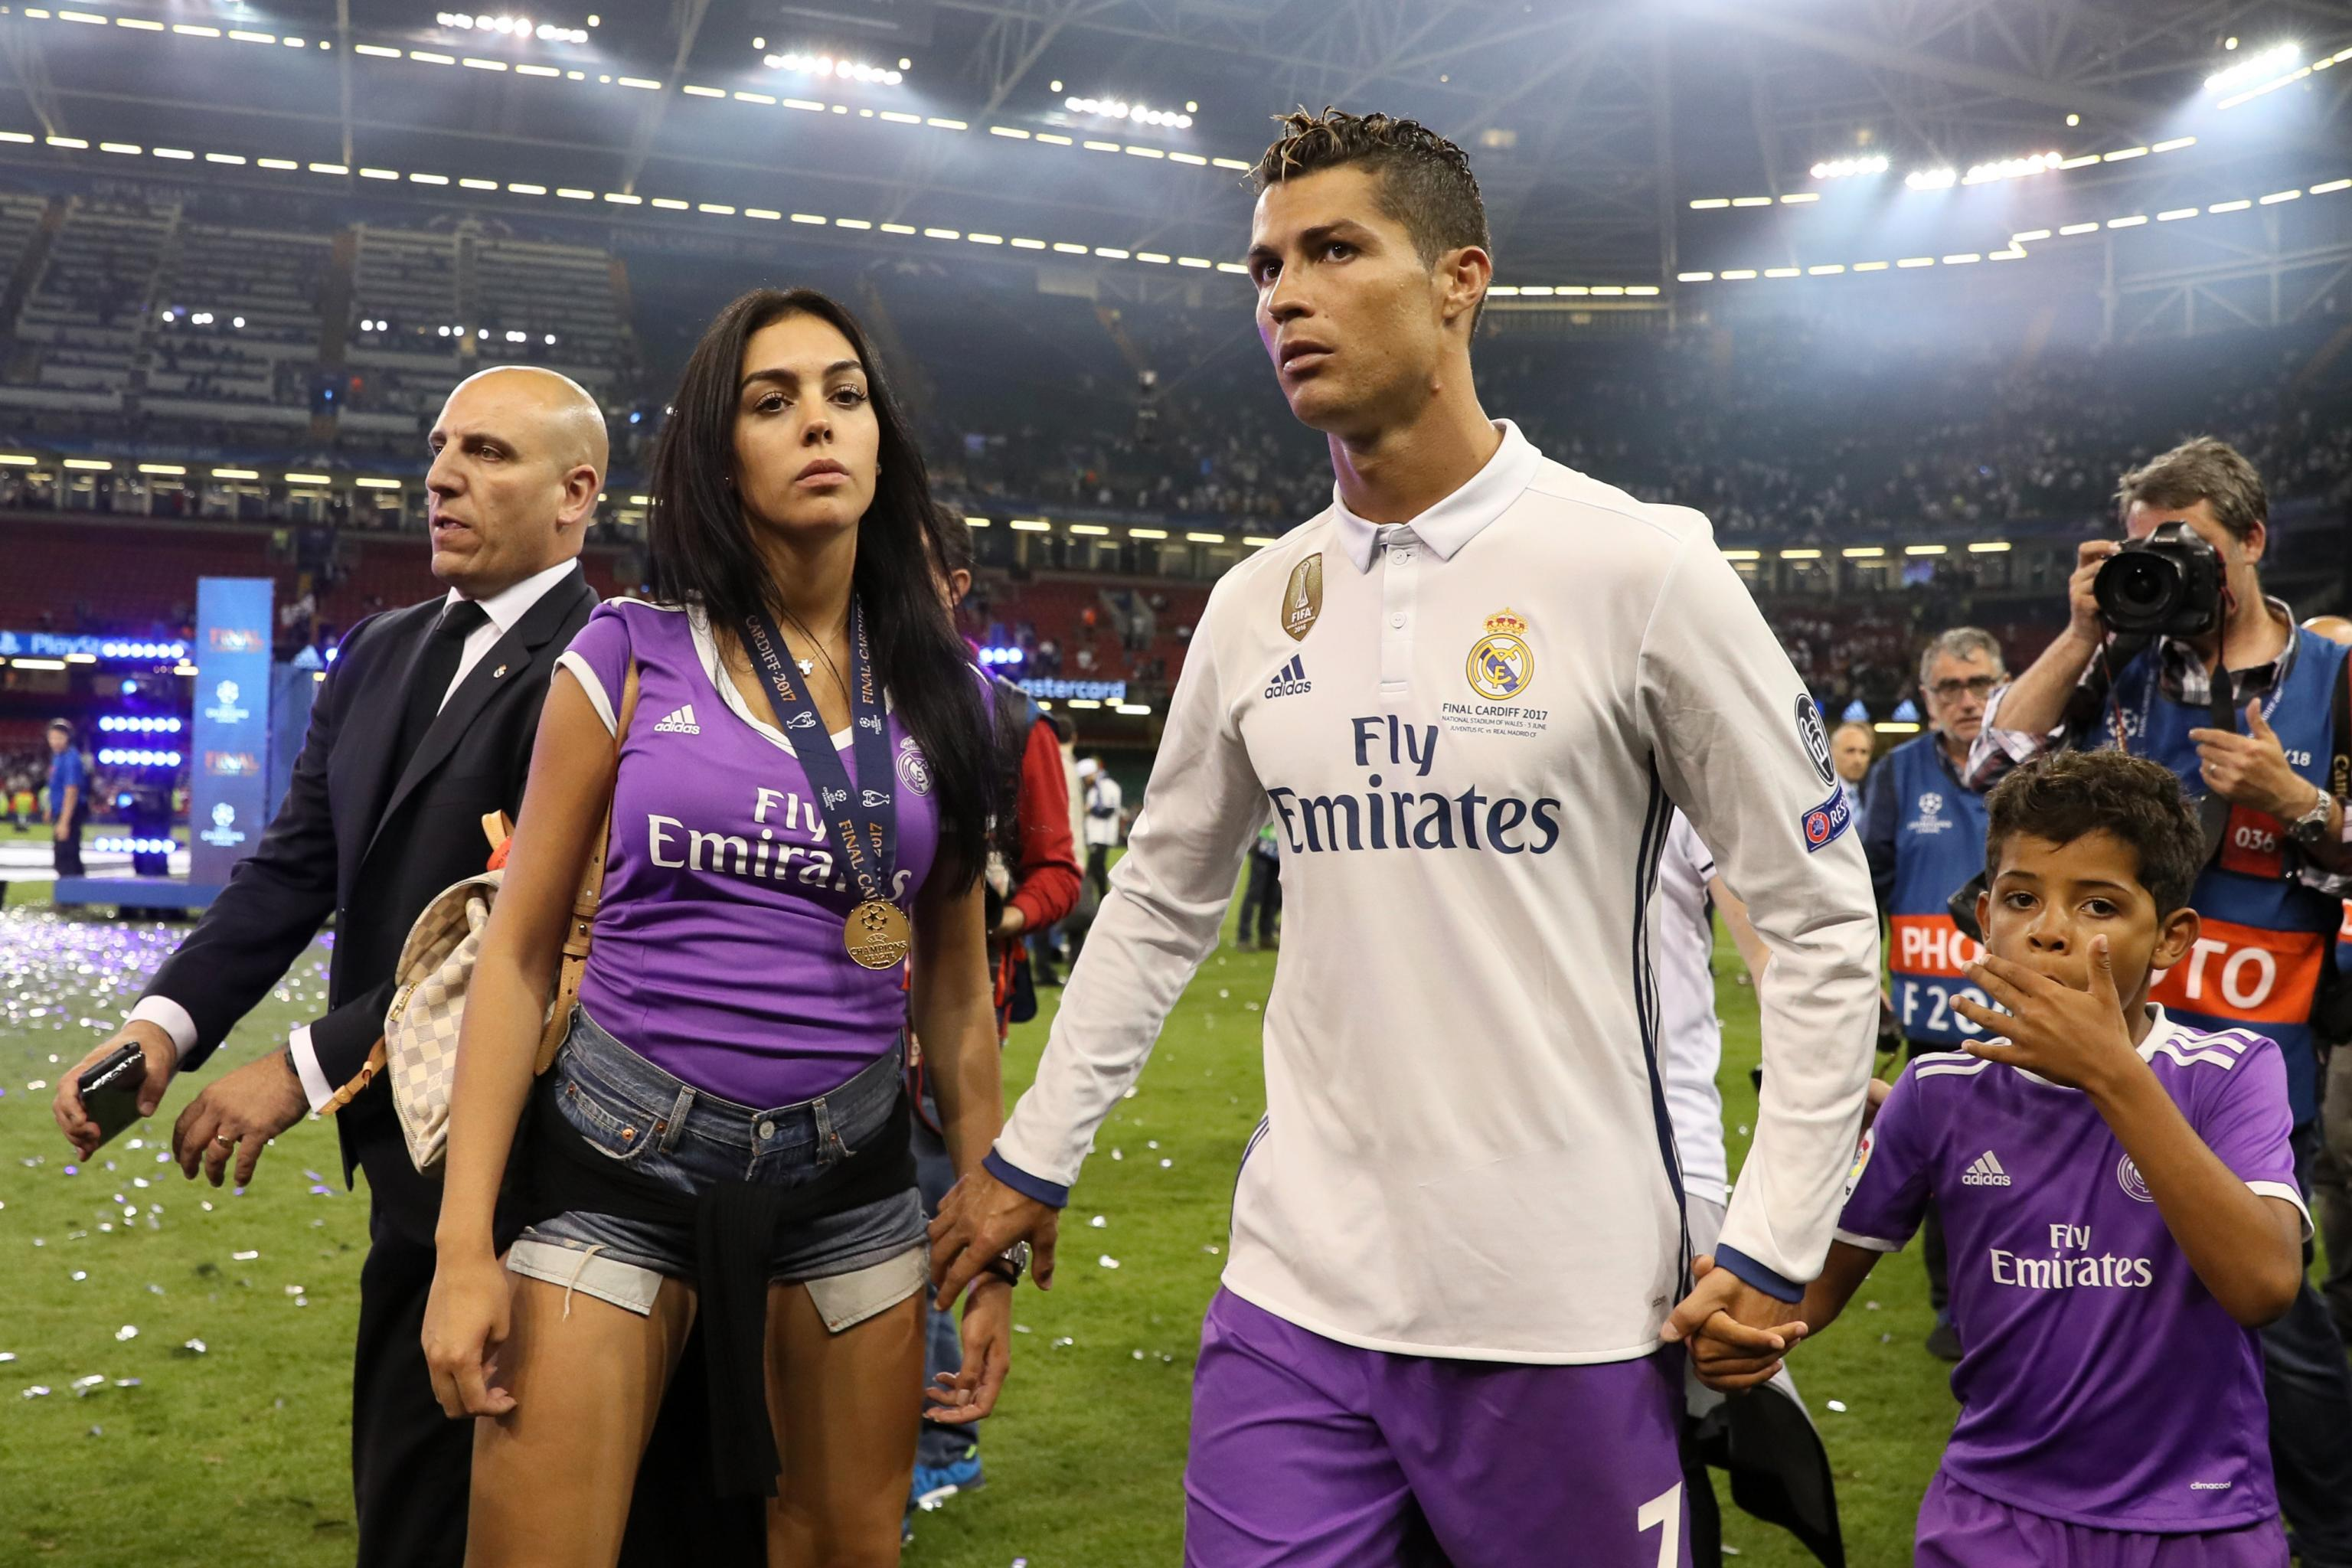 Cristiano Ronaldo Confirms Girlfriend Georgina Rodriguez Is Pregnant Bleacher Report Latest News Videos And Highlights